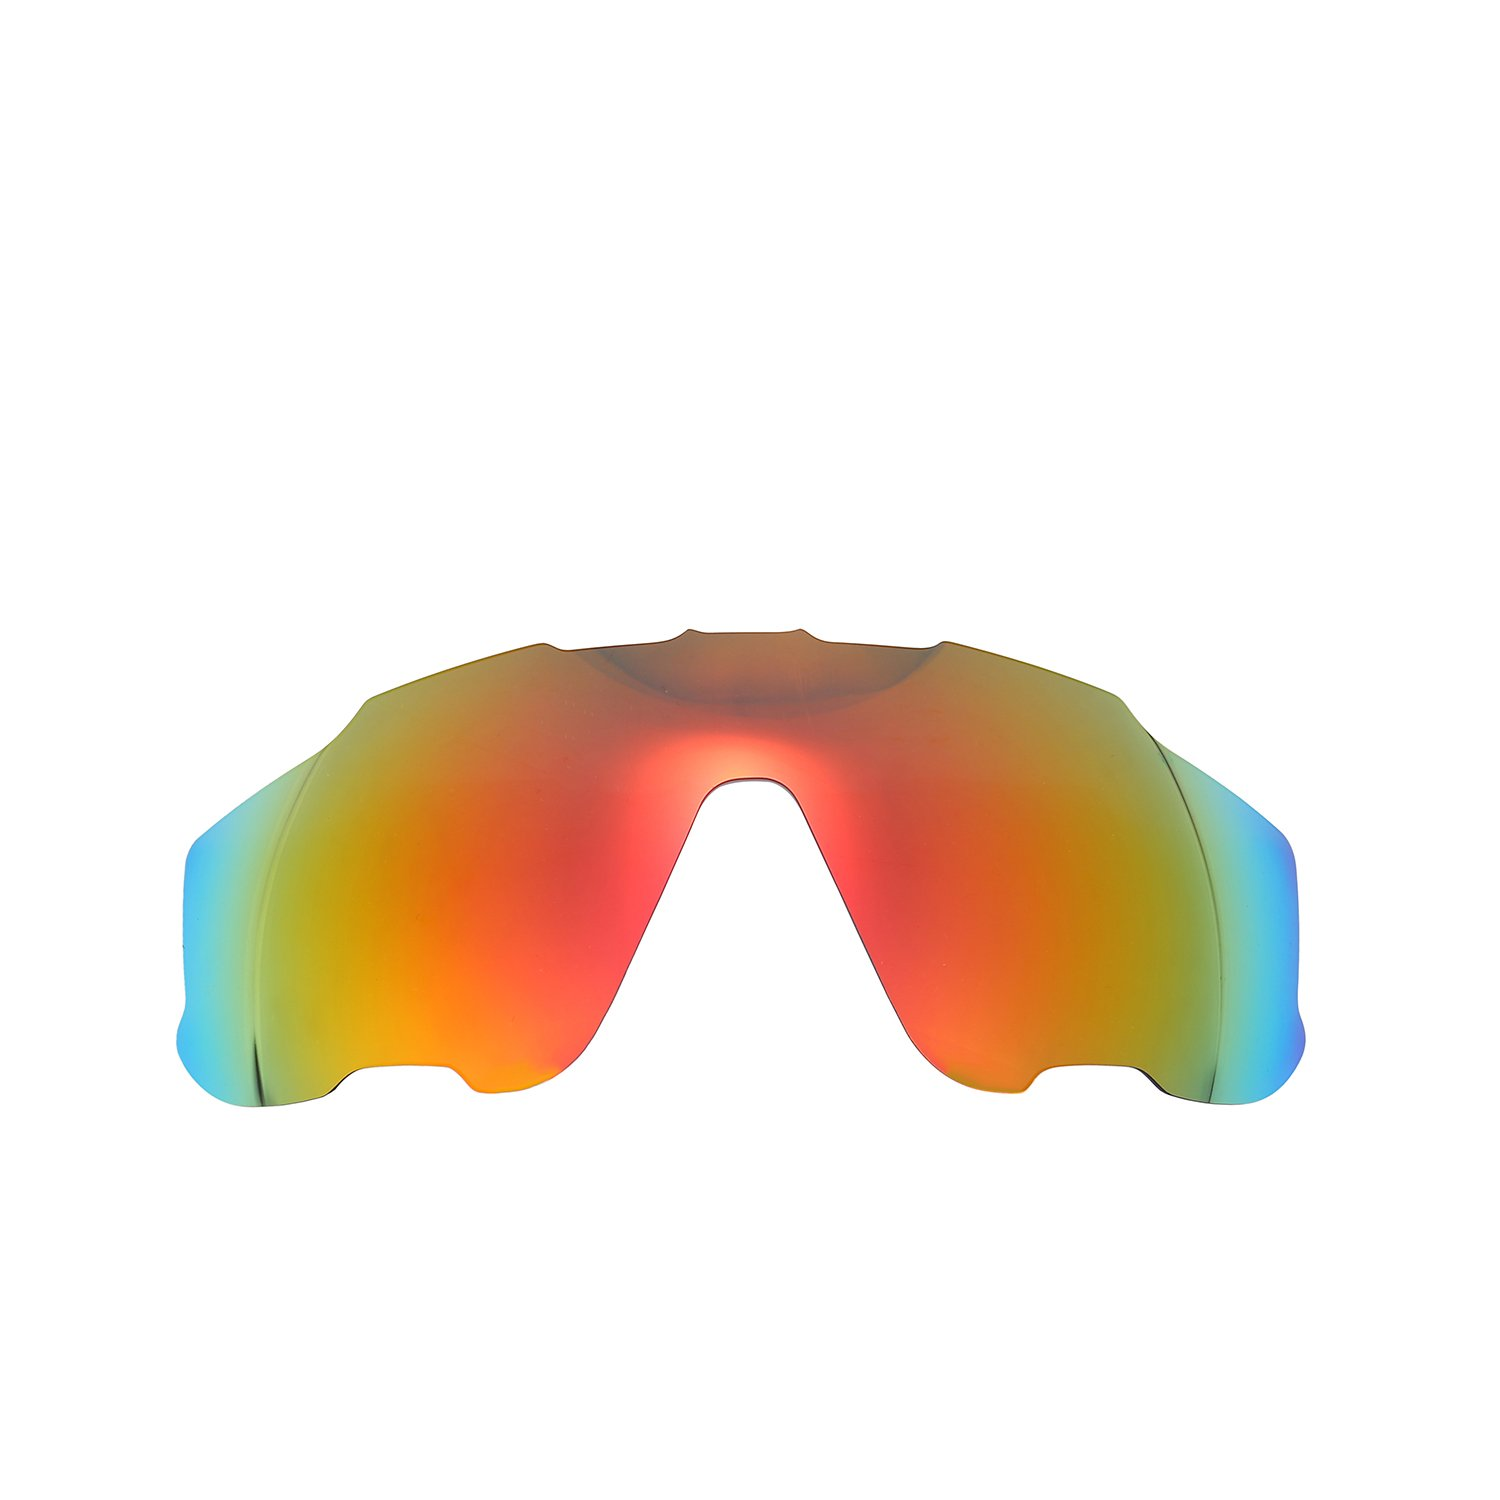 b51ff88047 Amazon.com  Polarized Replacement Lenses for Oakley Jawbreaker Sunglasses  (Fire Red) NicelyFit  Clothing